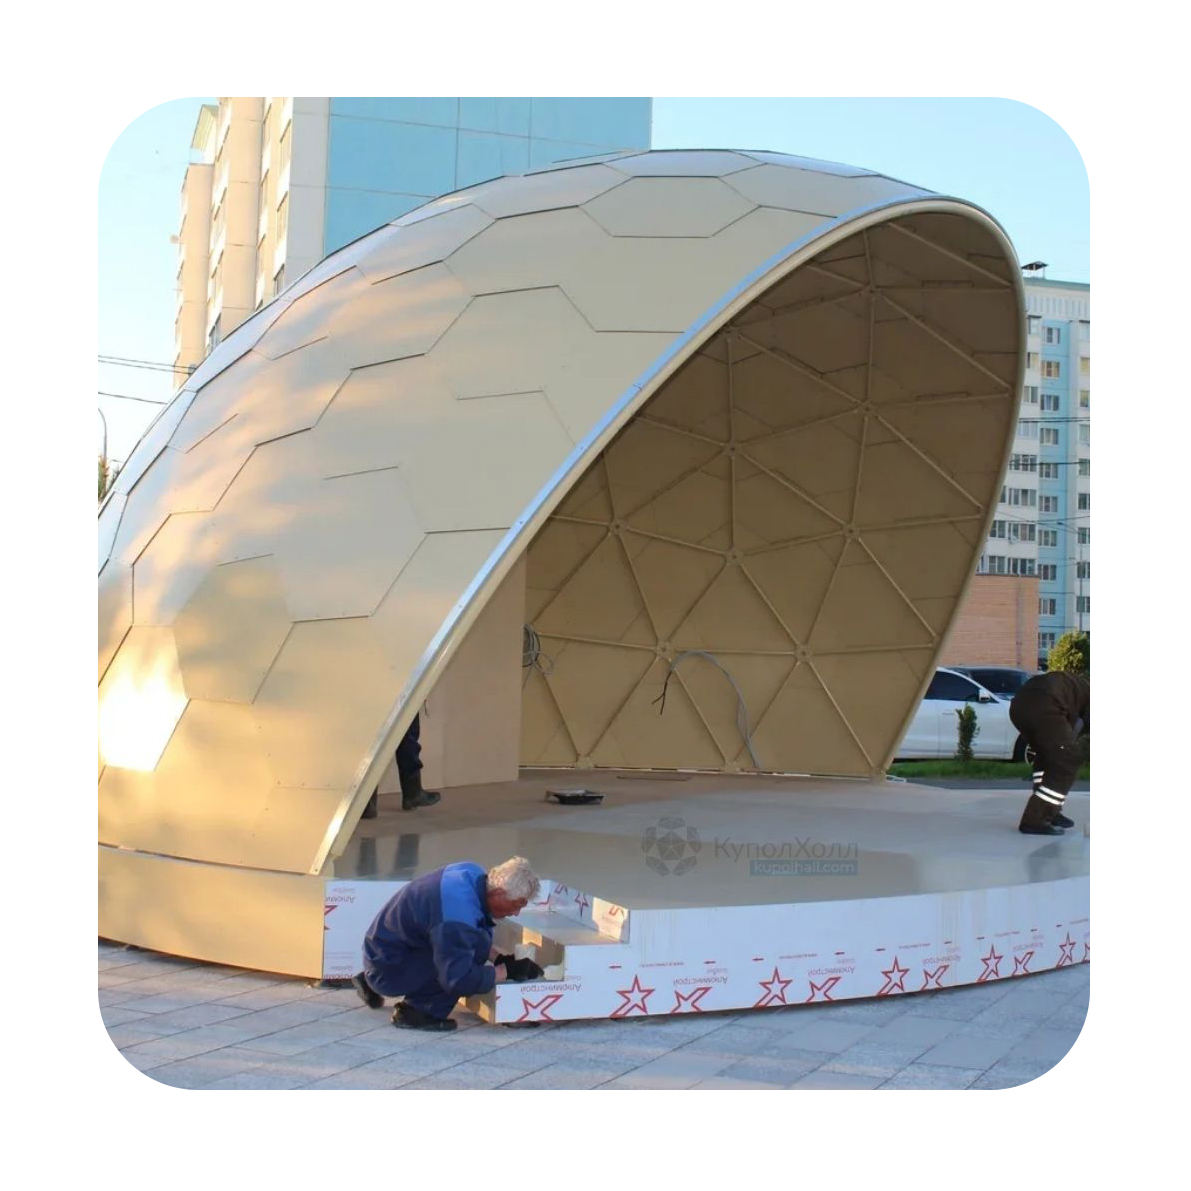 Geodesic dome concert stage platform, Diameter 8 m, Vandal-Proof, 70 Years Service Life, The Best Design and Technology